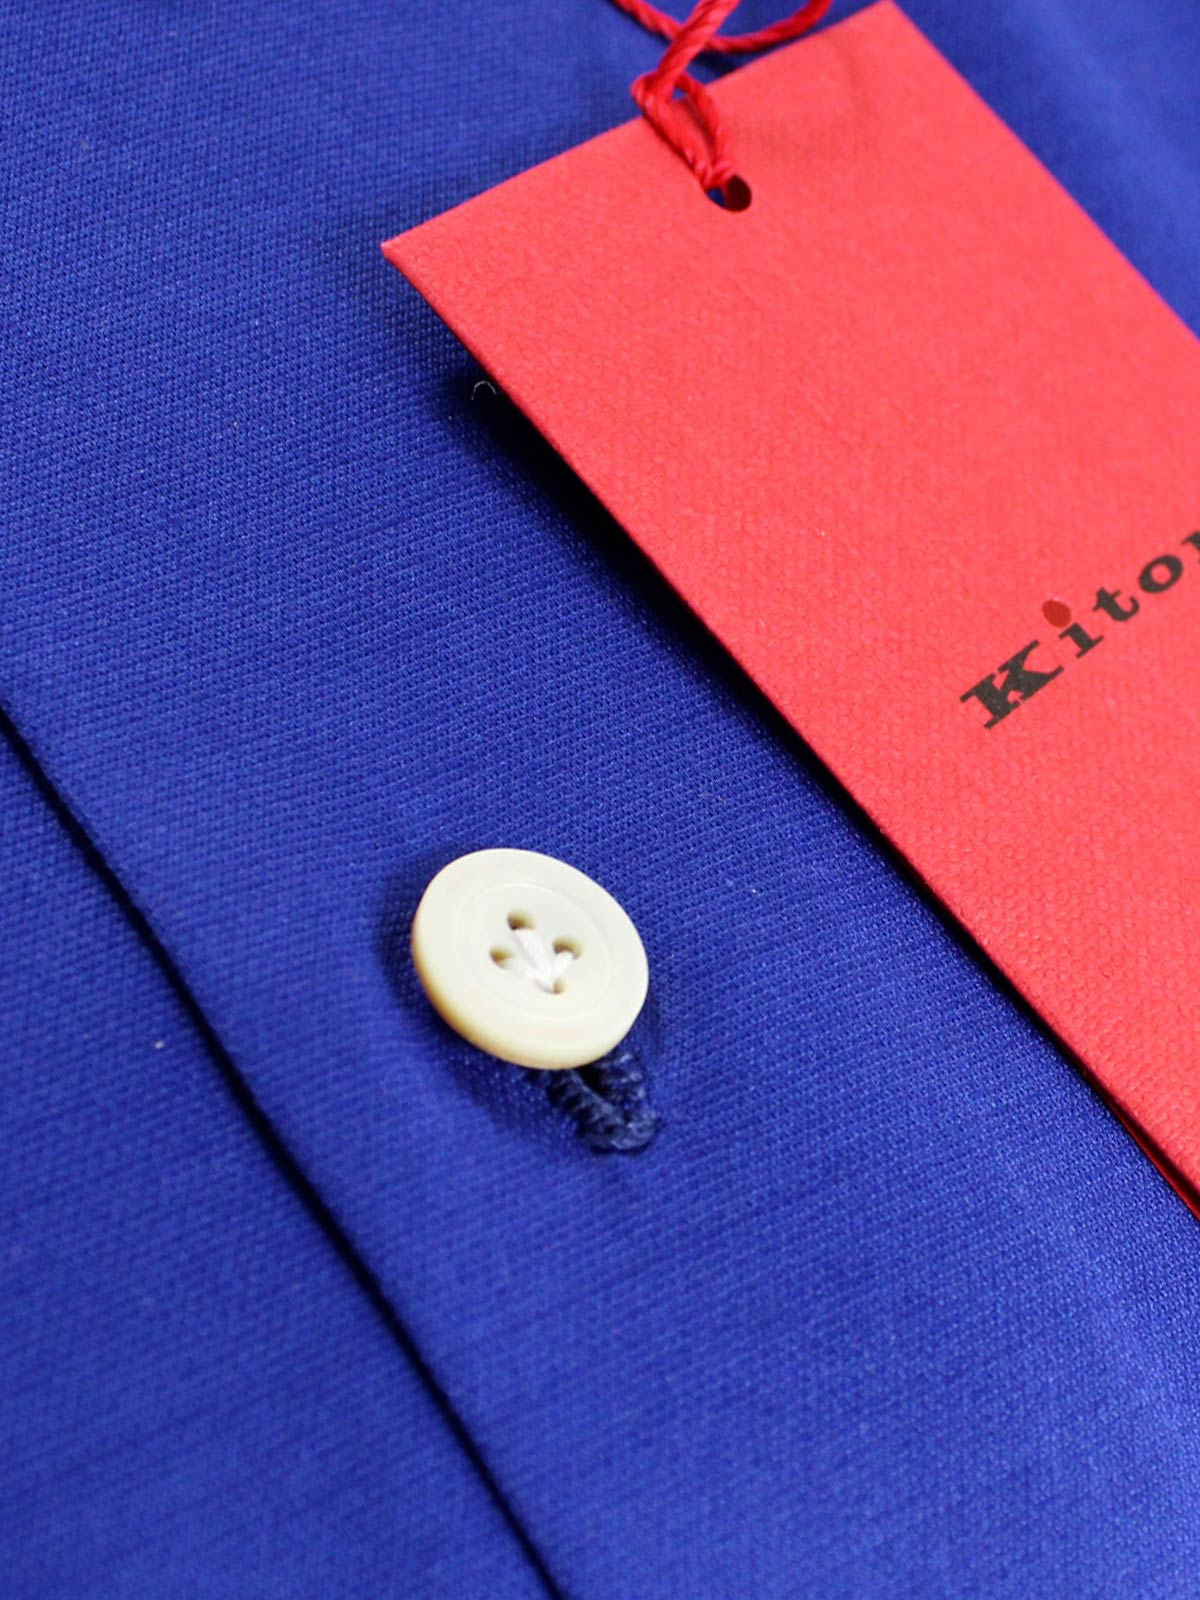 Kiton Shirt Blue Button Down Collar Shirt